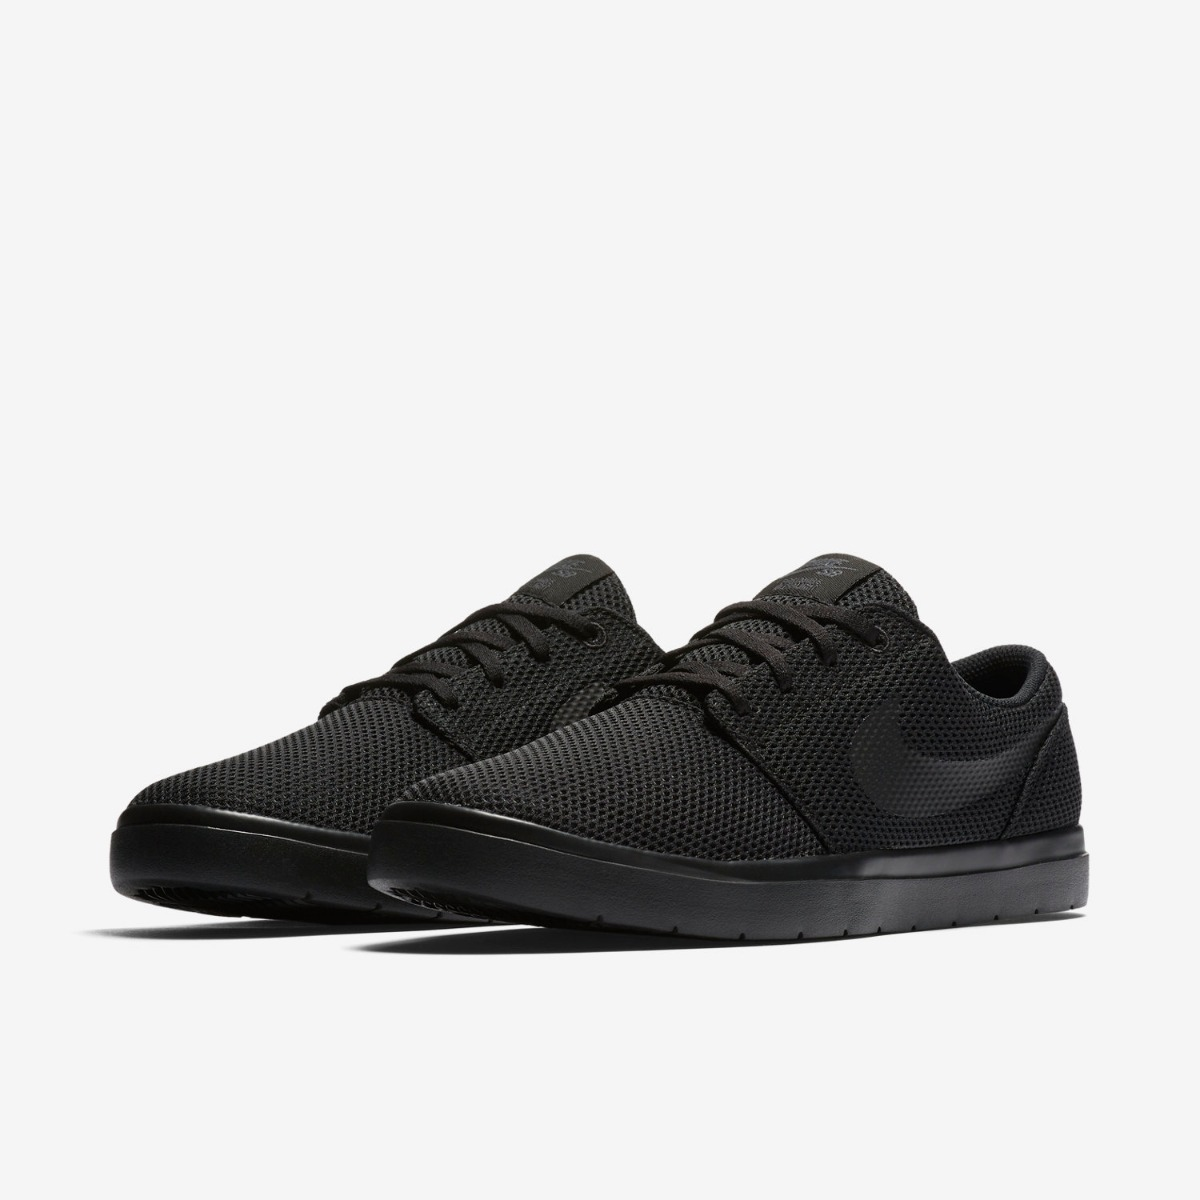 factory authentic 454e8 2e7c0 zapatillas nike sb portmore ultralight 2 black suela negra ...